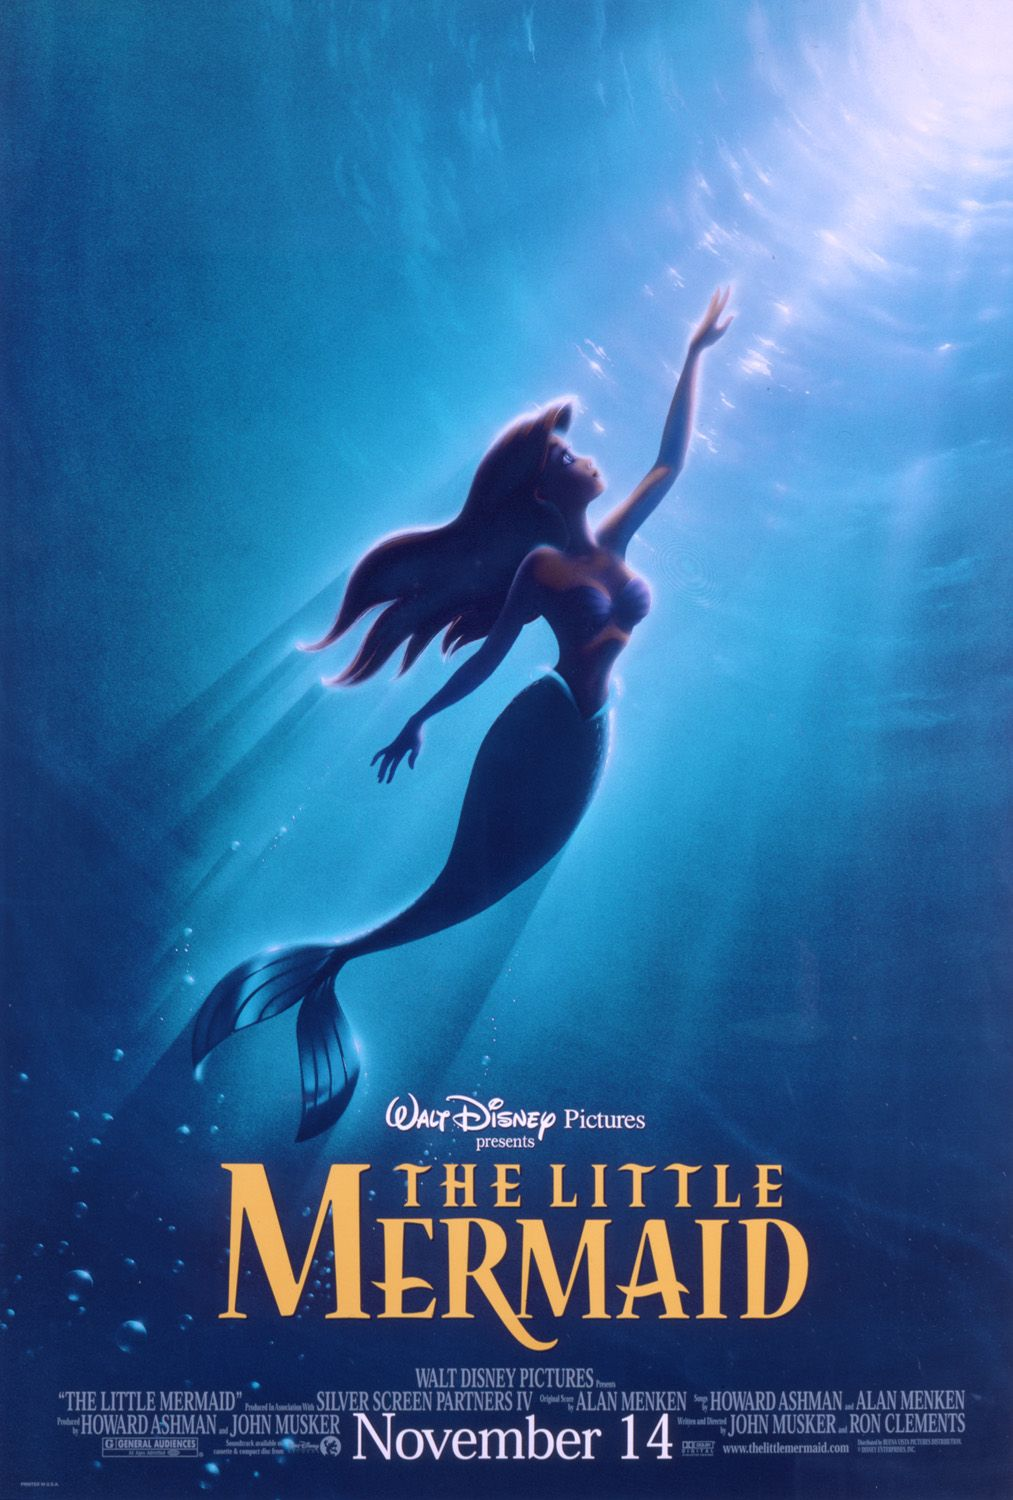 Epic Disney Watchfest 4: The Little Mermaid: A Review Dripping With